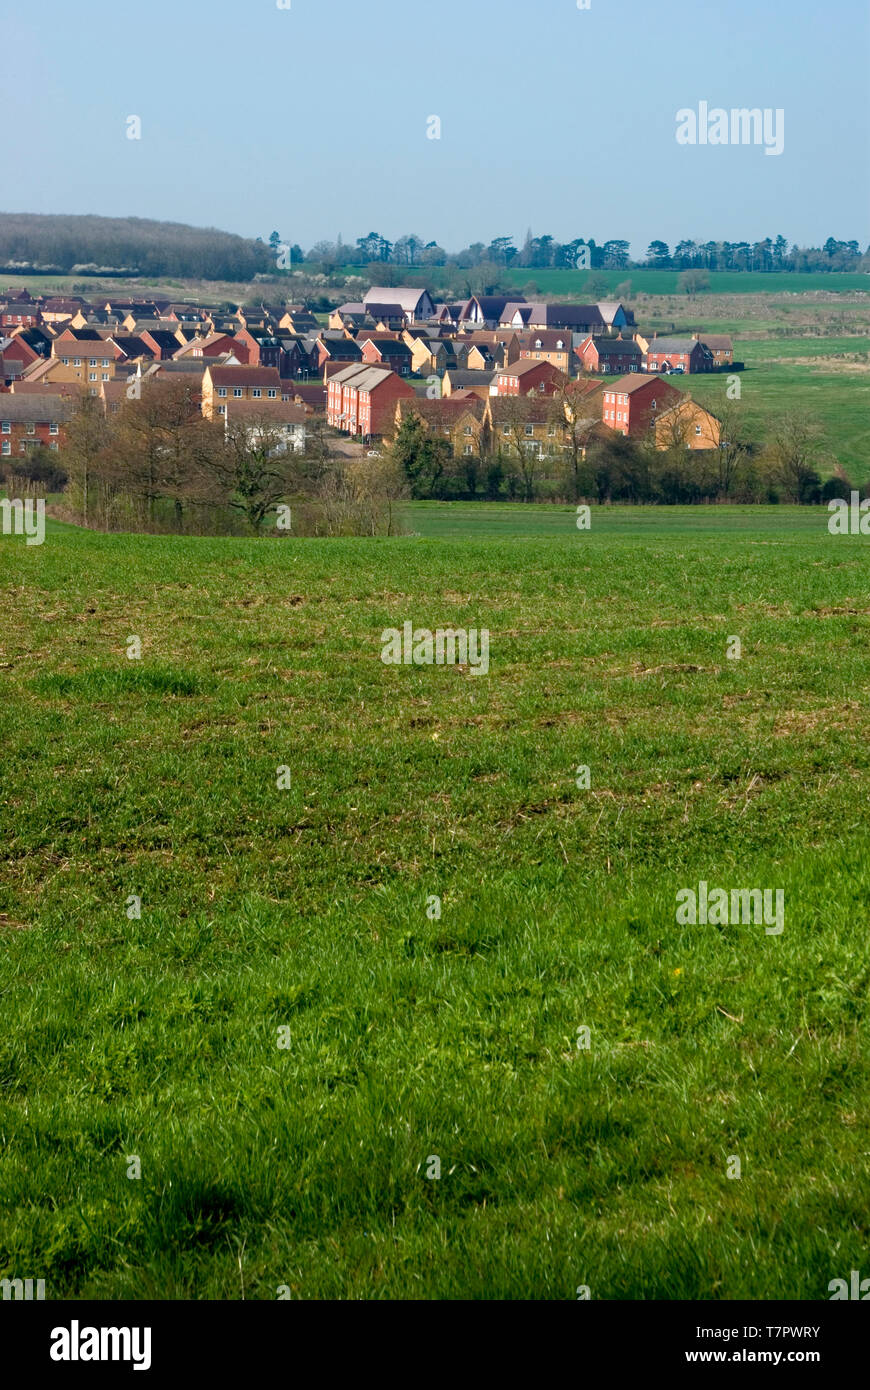 Housing on Greenfield site - Stock Image